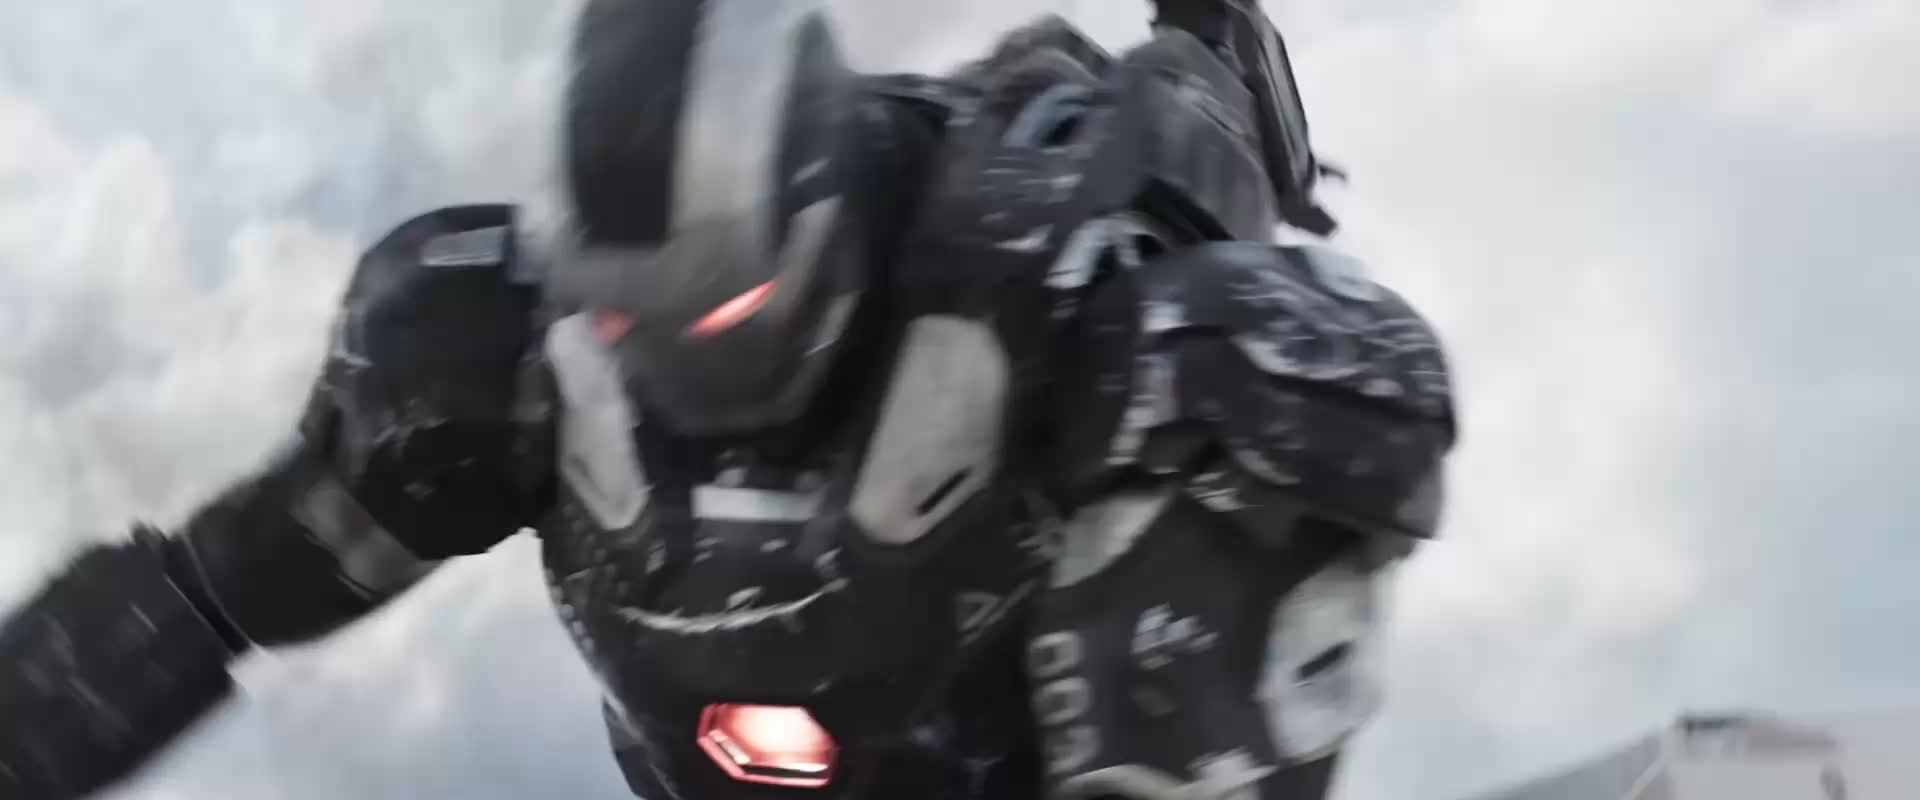 whowouldwin, How (the hell) can the Avengers (MCU) stop Godzilla (2014)? (reddit) GIFs